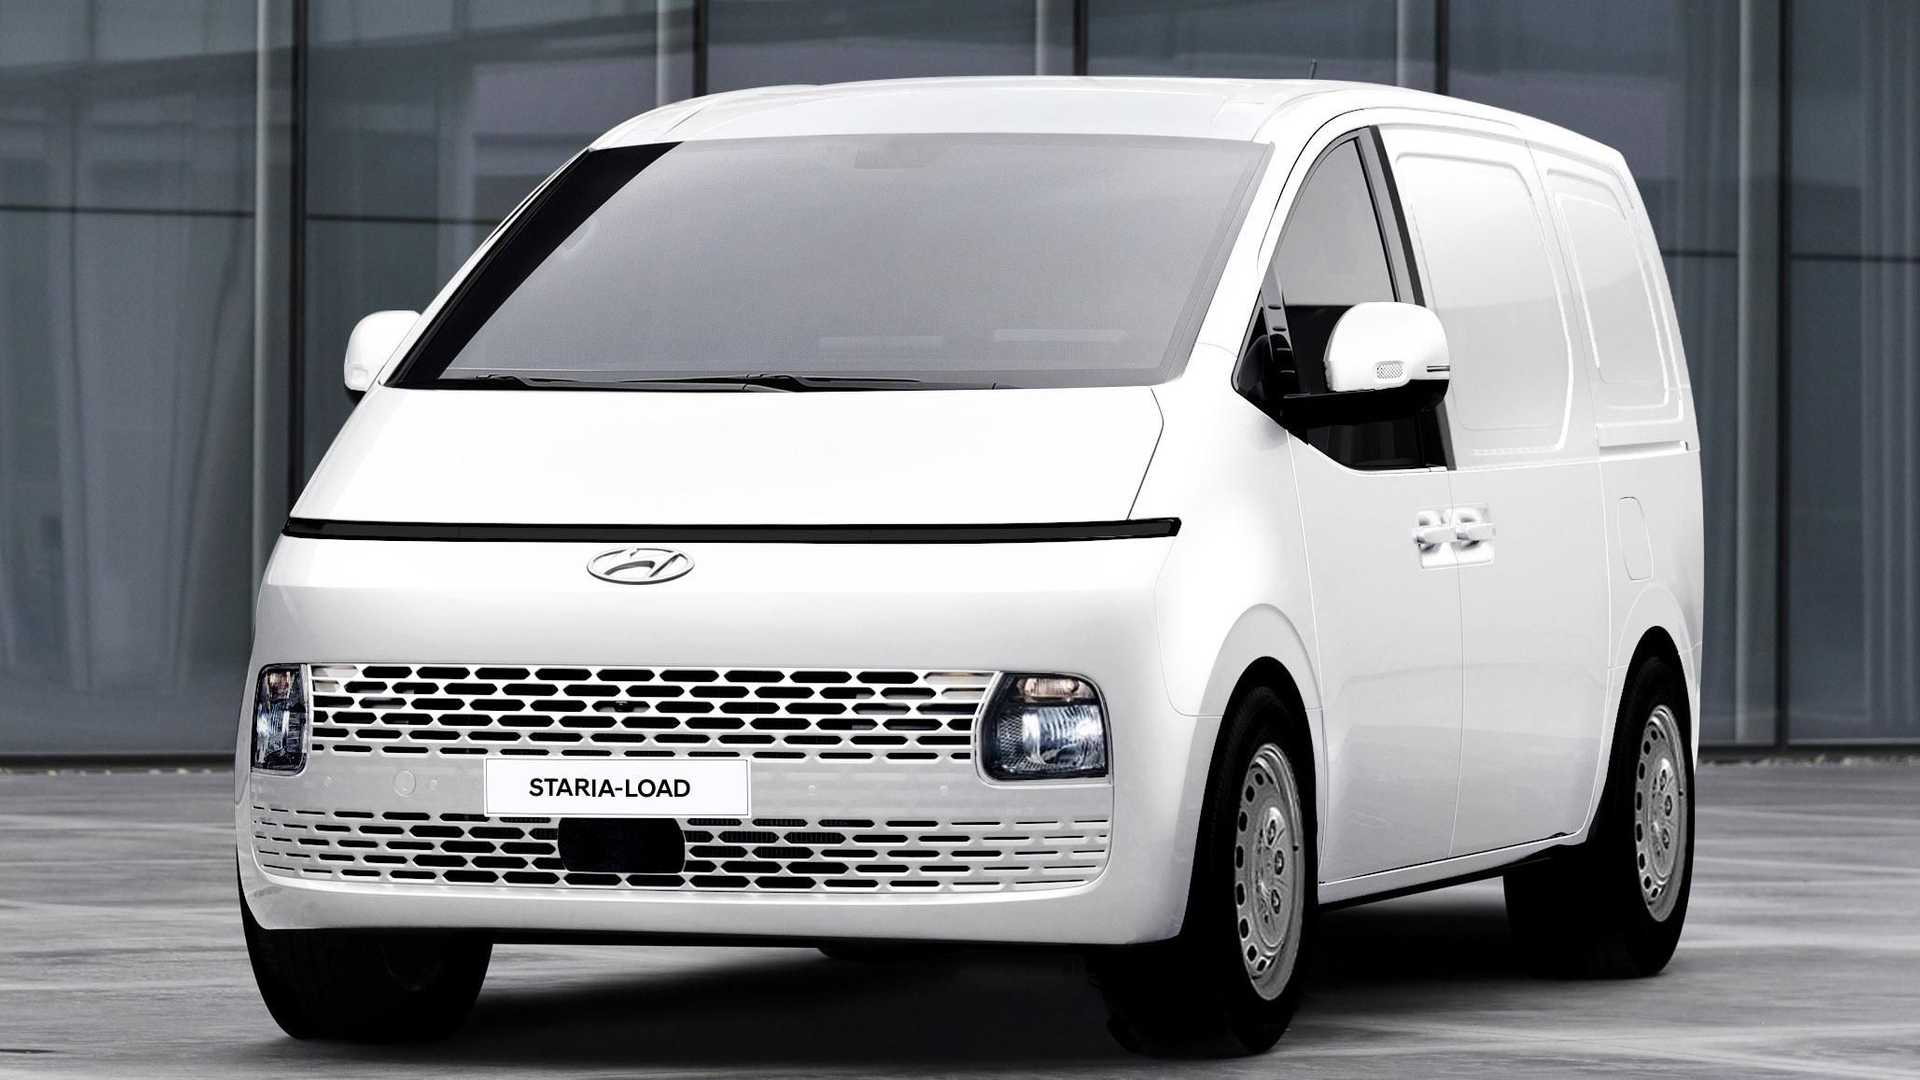 Hyundai revealed the 11-seat passenger version of its futuristic Staria van in March, and now, a more utilitarian commercial variant of it has been announced for Australia.